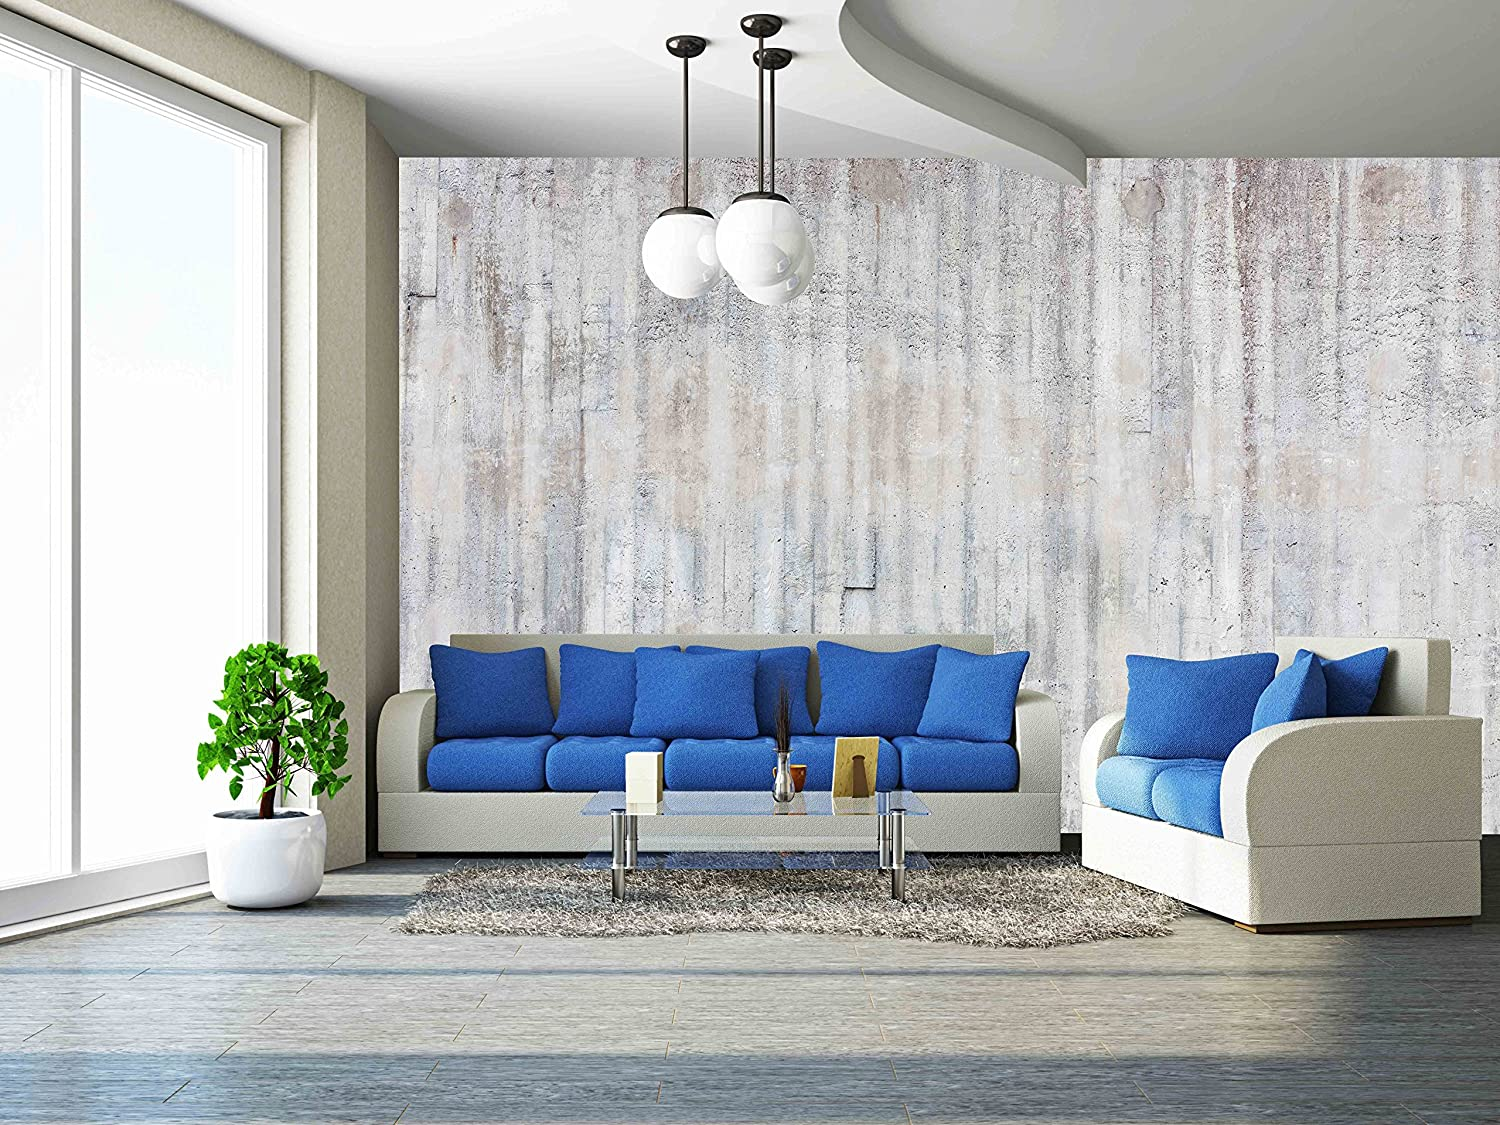 wall26 com art prints framed art canvas prints greeting wall26 weathered concrete wall texture removable wall mural self adhesive large wallpaper 100x144 inches